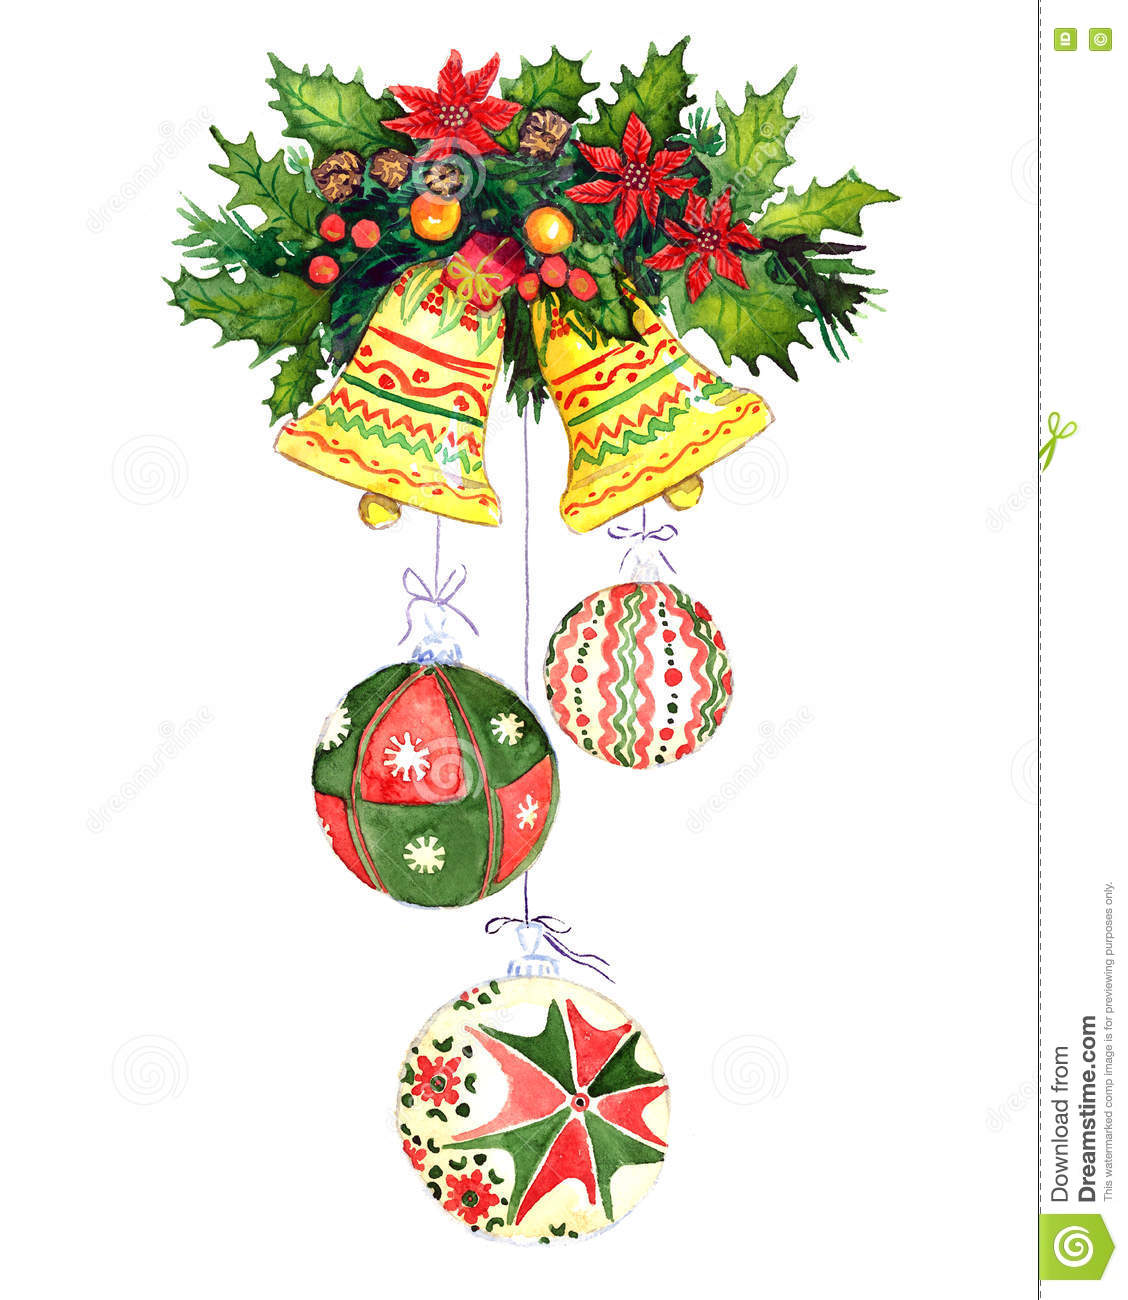 Pine Branches For Decoration Christmas Decoration With Pine Tree Branches Berries Bells And